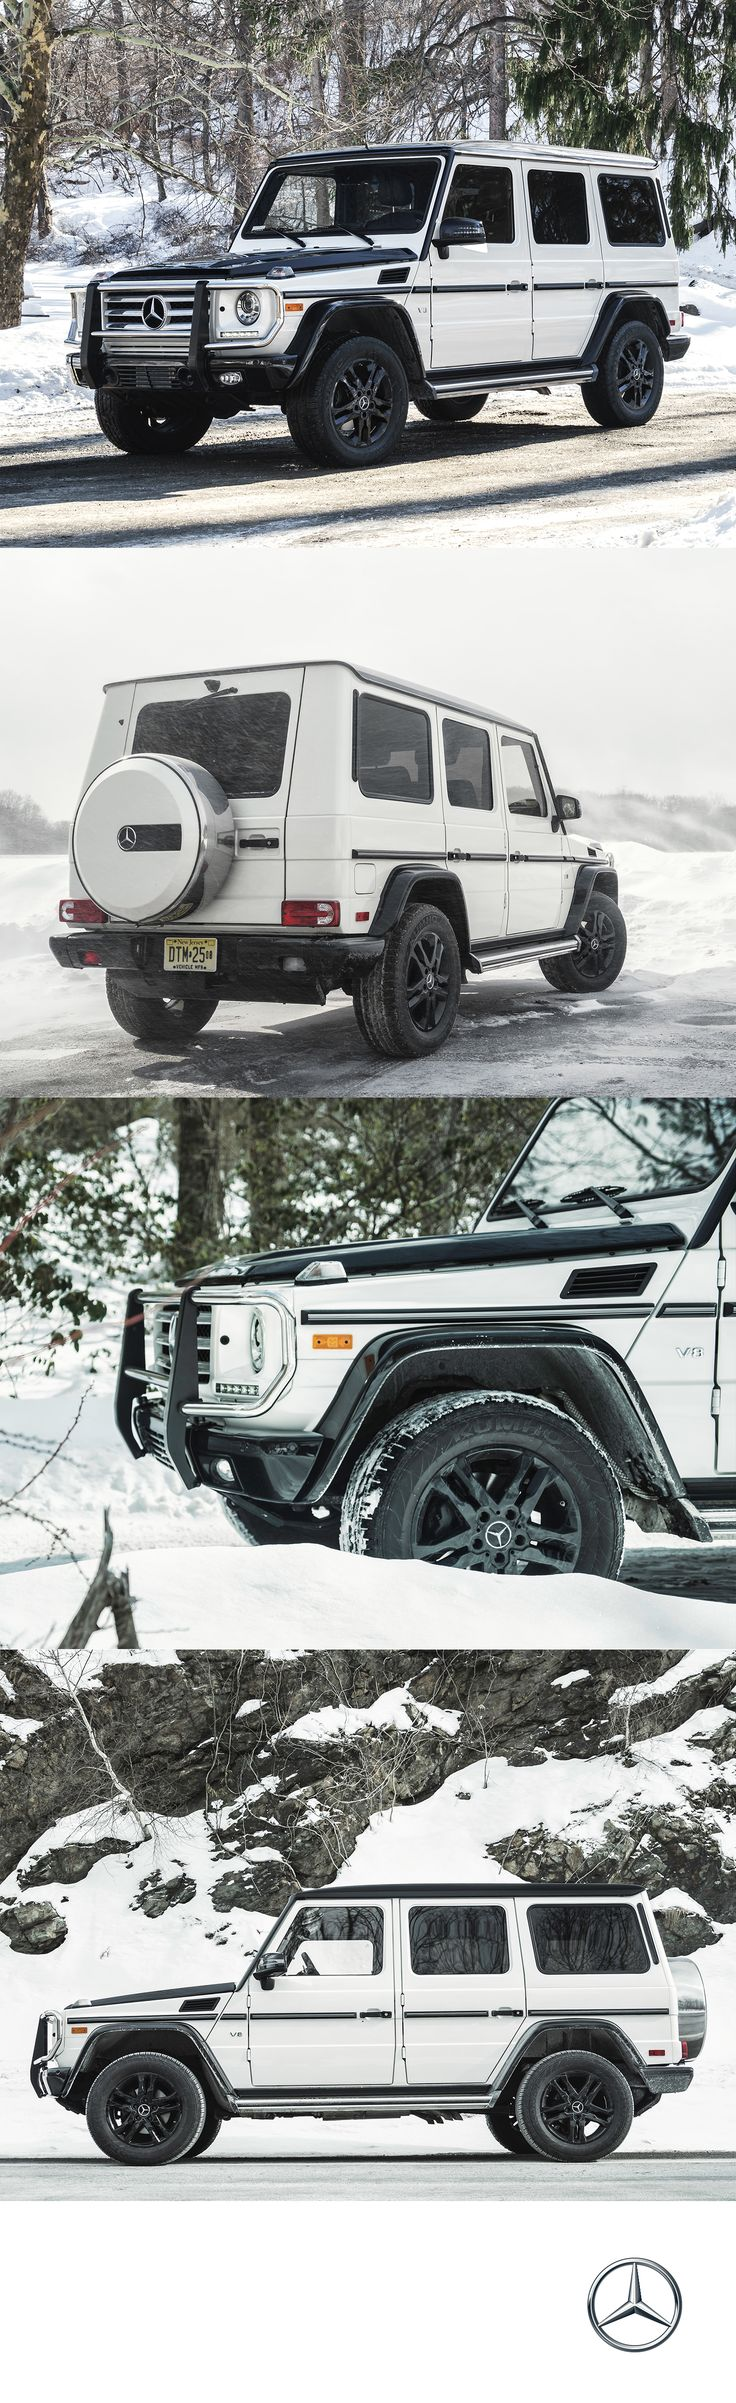 Dashing through the snow on a 382 horsepower sleigh. The V8 and paddle-shifted 7-speed automatic engine let's you take on any terrain with the Mercedes-Benz G550.